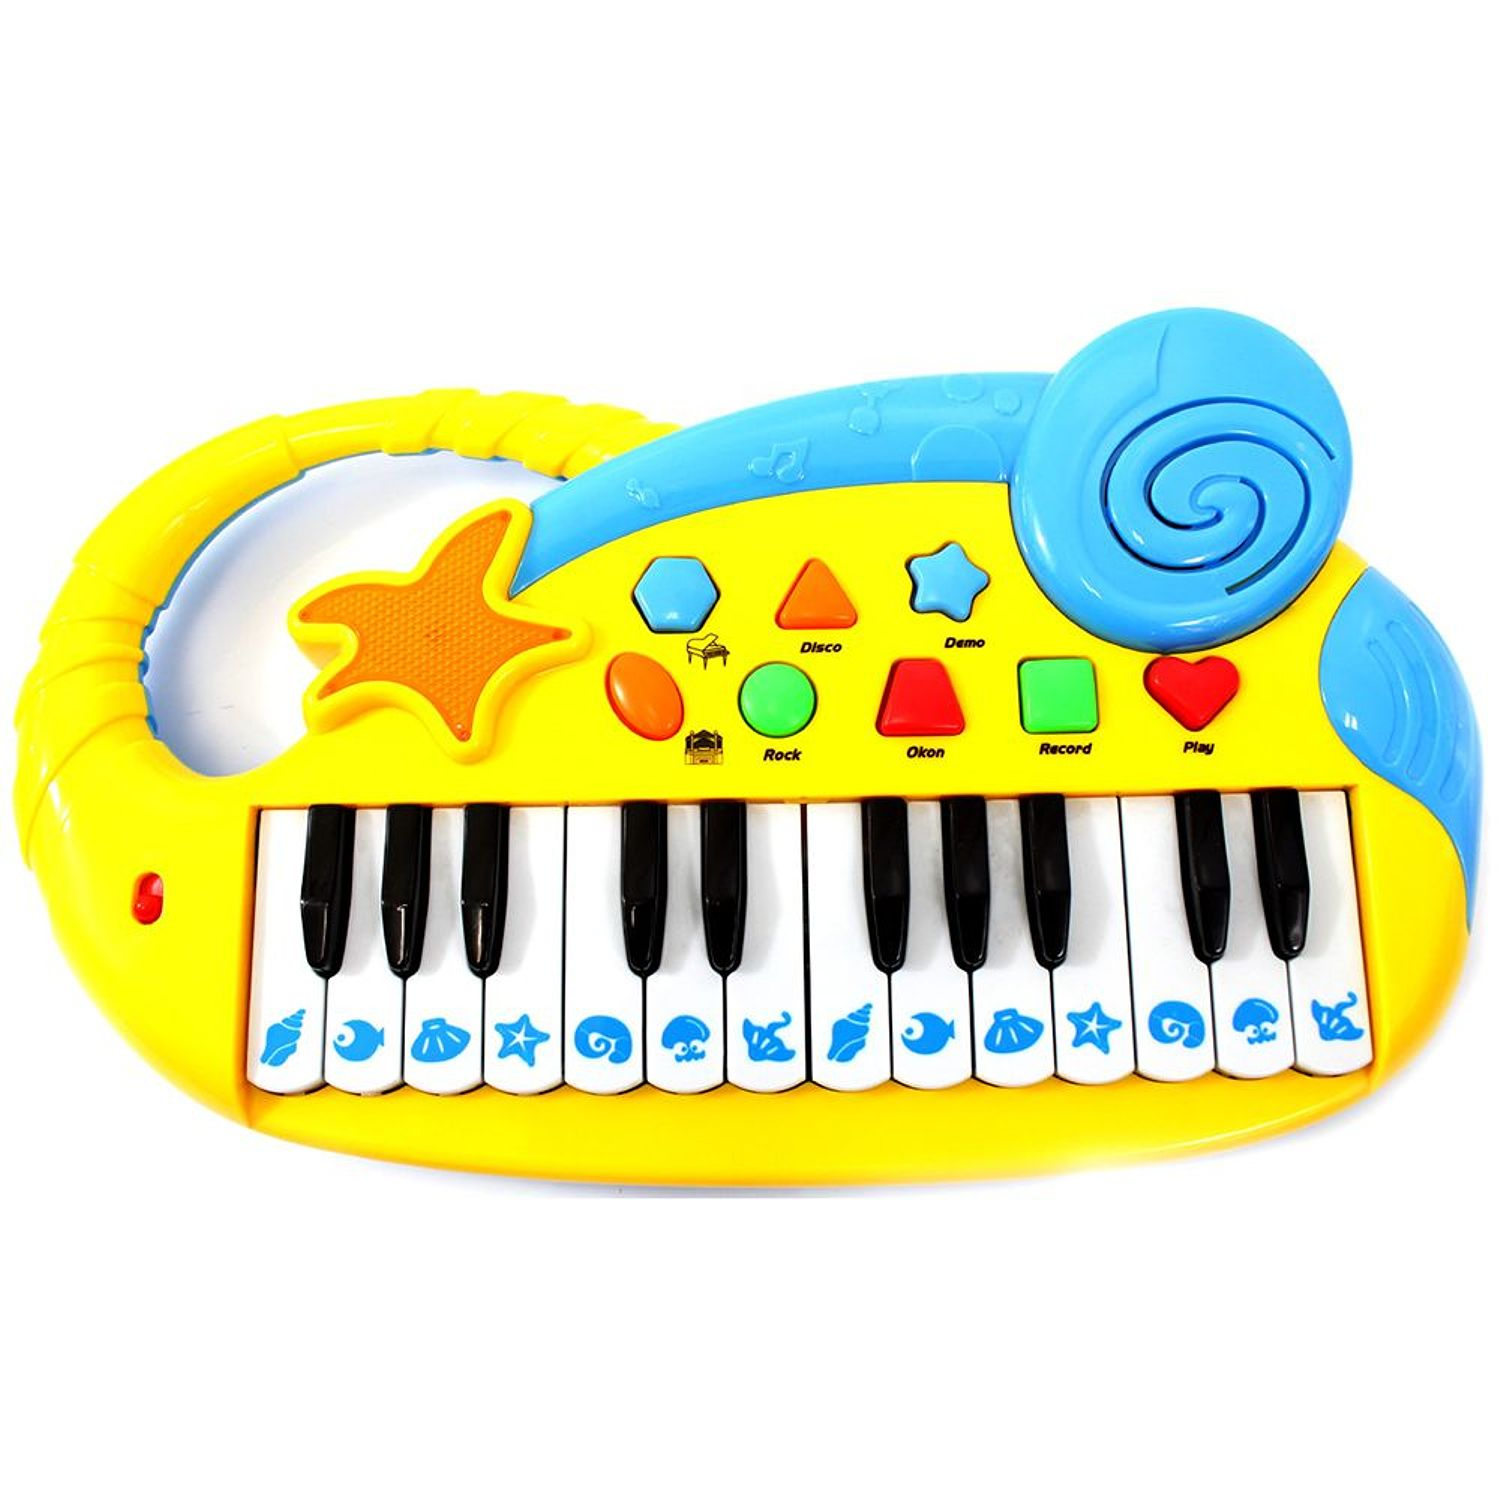 Musical Fun Electronic Piano Keyboard for Kids with Record and Playback Yellow by